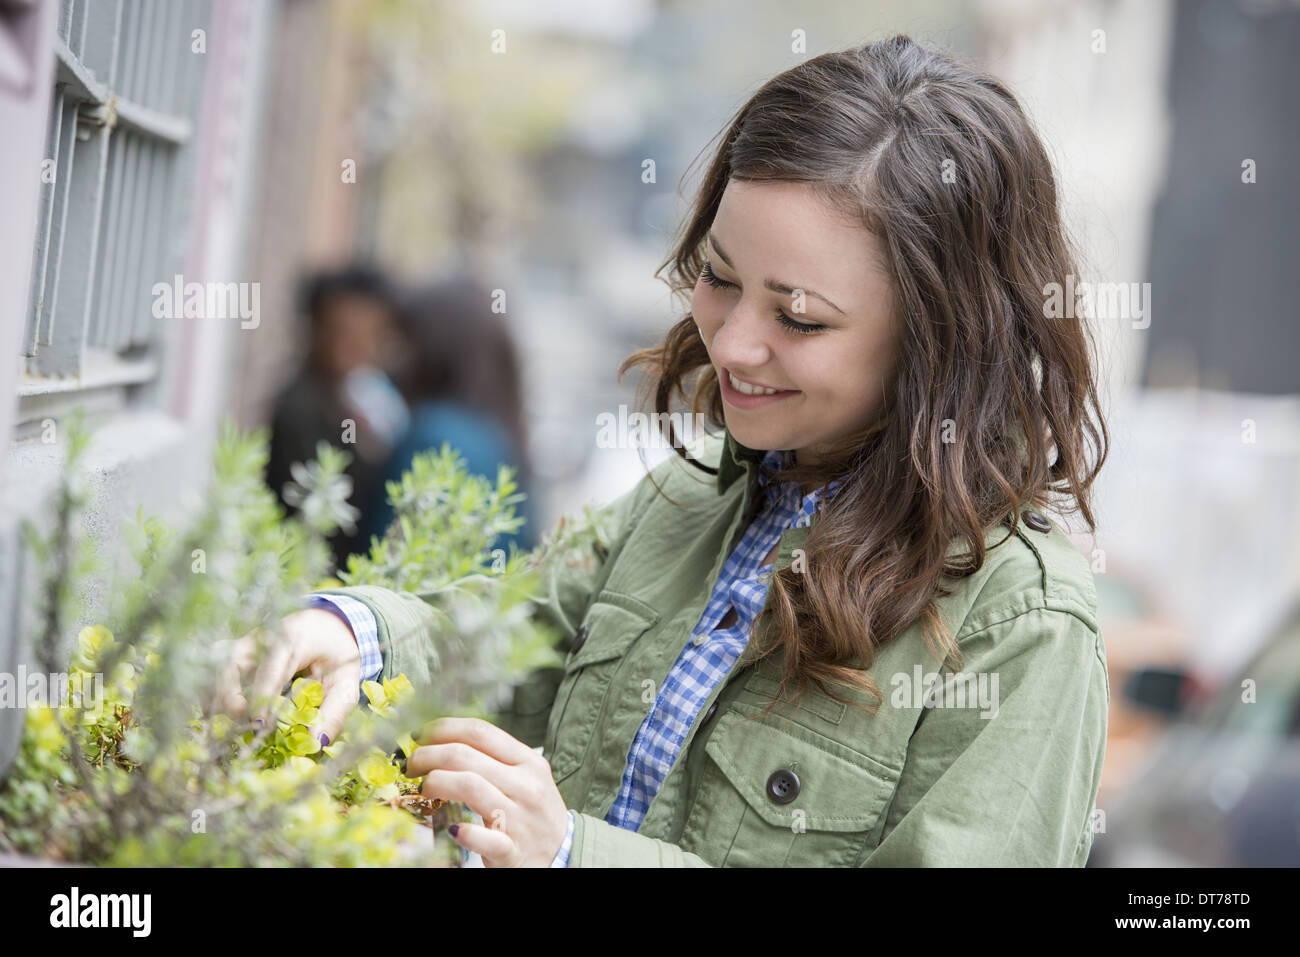 A woman tending a window box on a city street. Spring flowers. - Stock Image